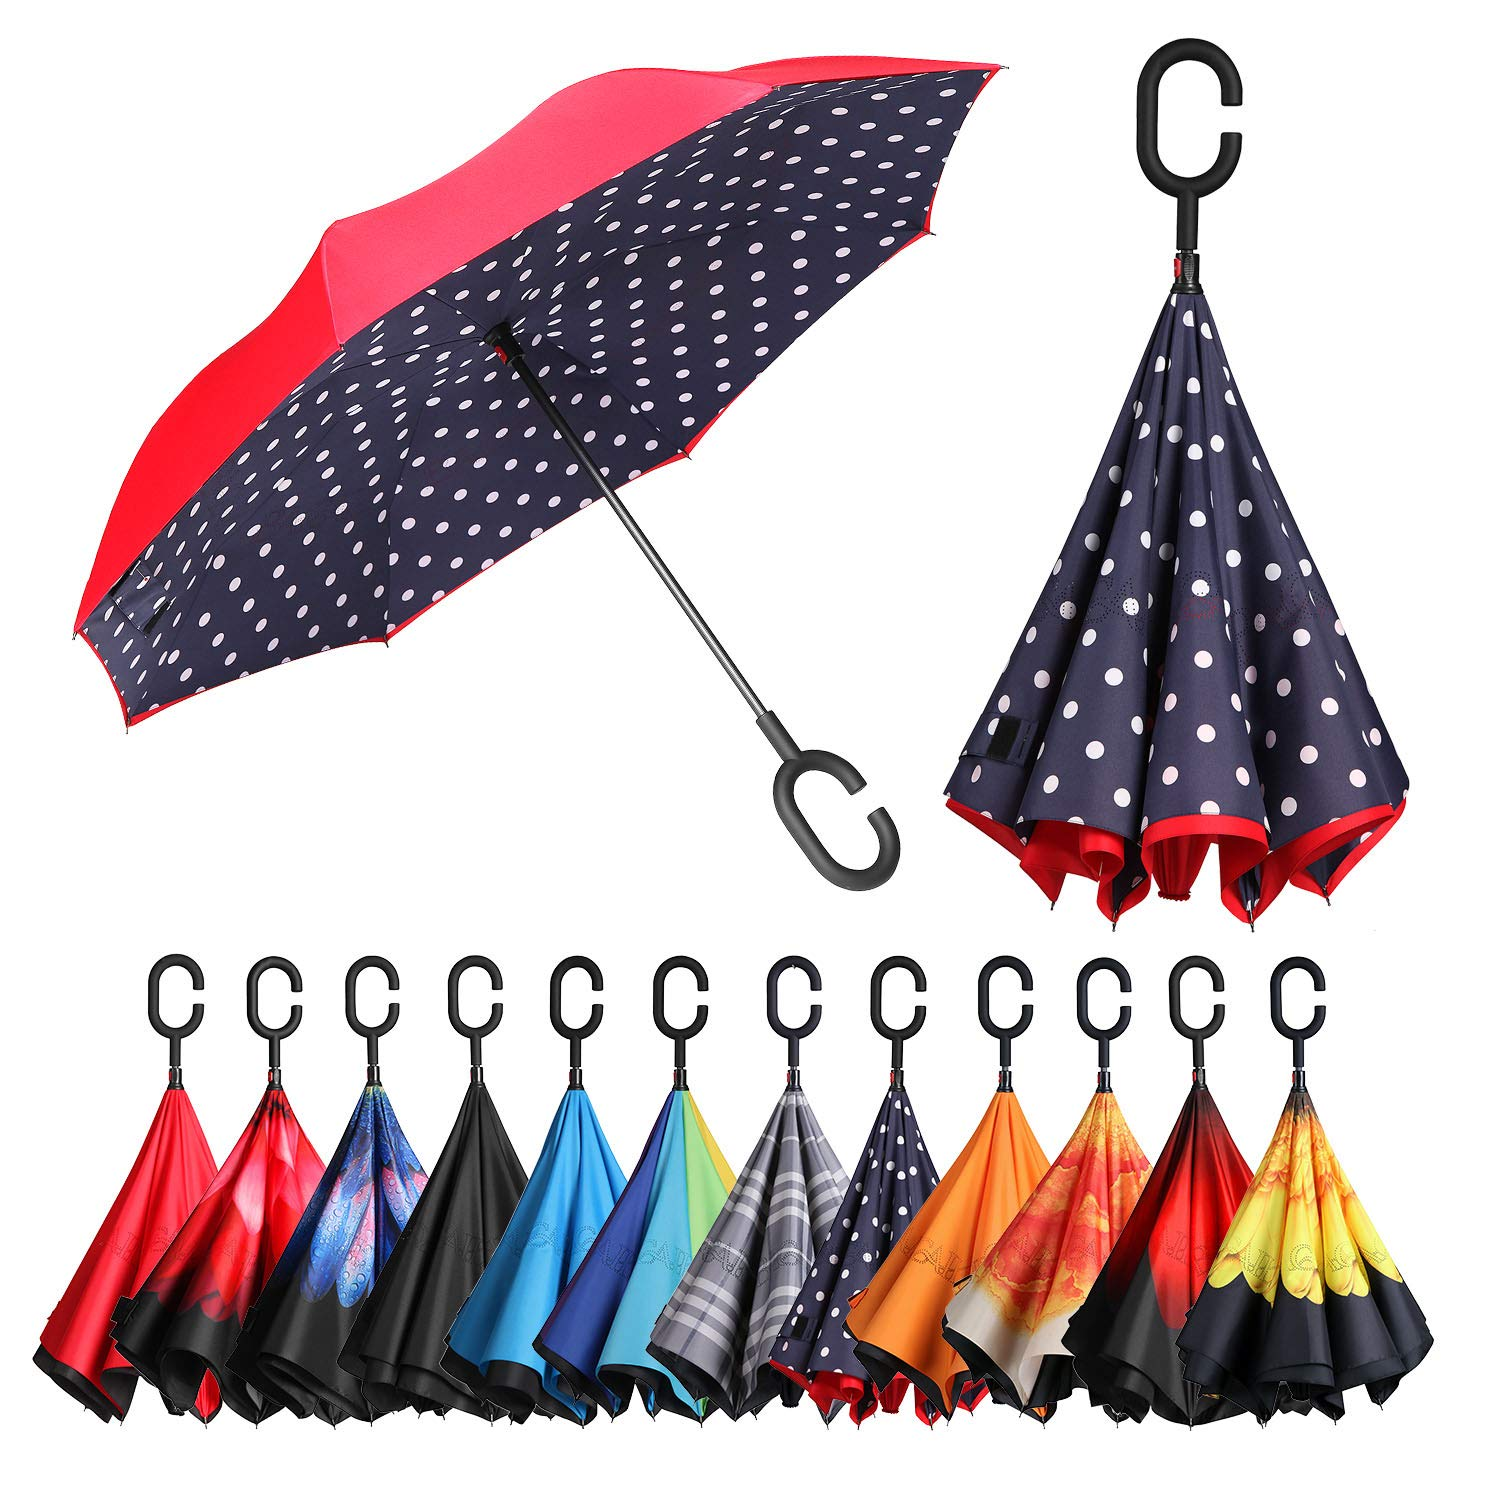 BAGAIL Double Layer Inverted Umbrellas Reverse Folding Umbrella Windproof UV Protection Big Straight Umbrella for Car Rain Outdoor with C-Shaped Handle(Blue Dot) by BAGAIL